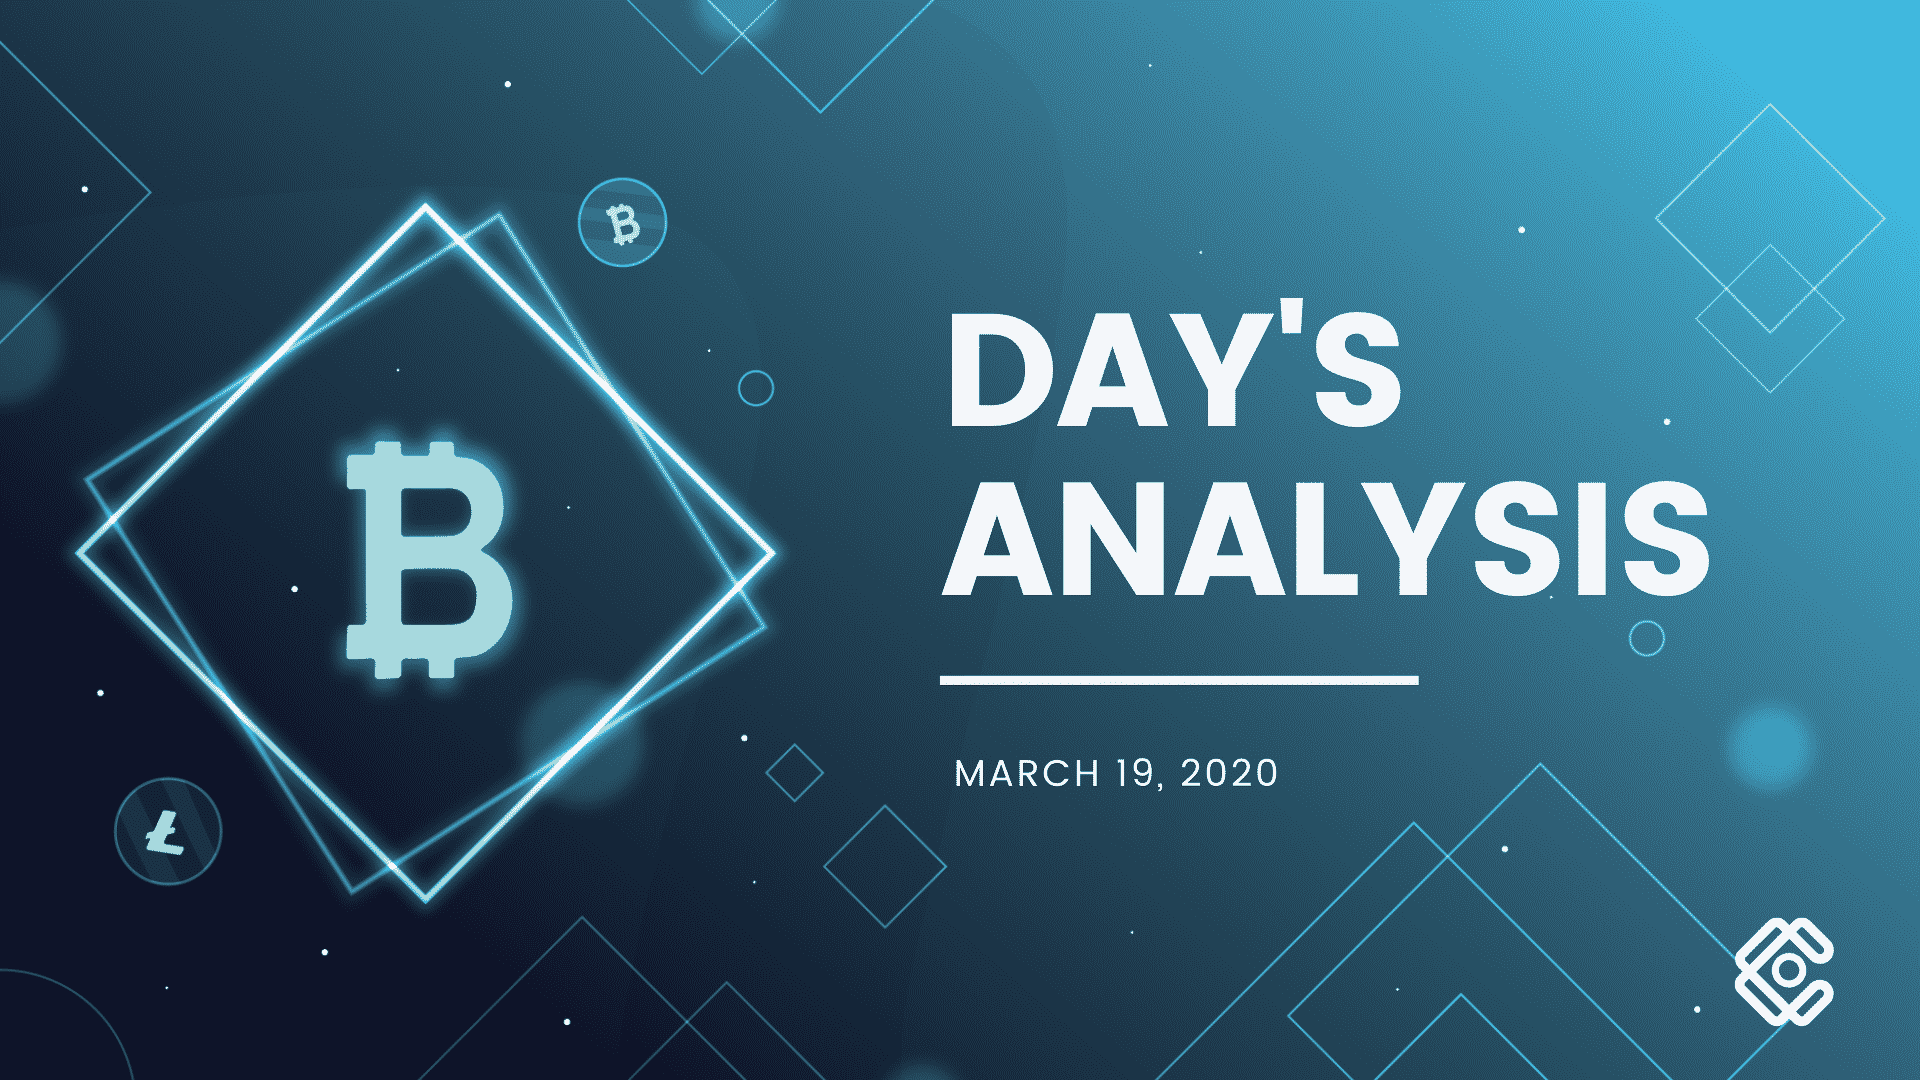 Market Analysis of March 19, 2020